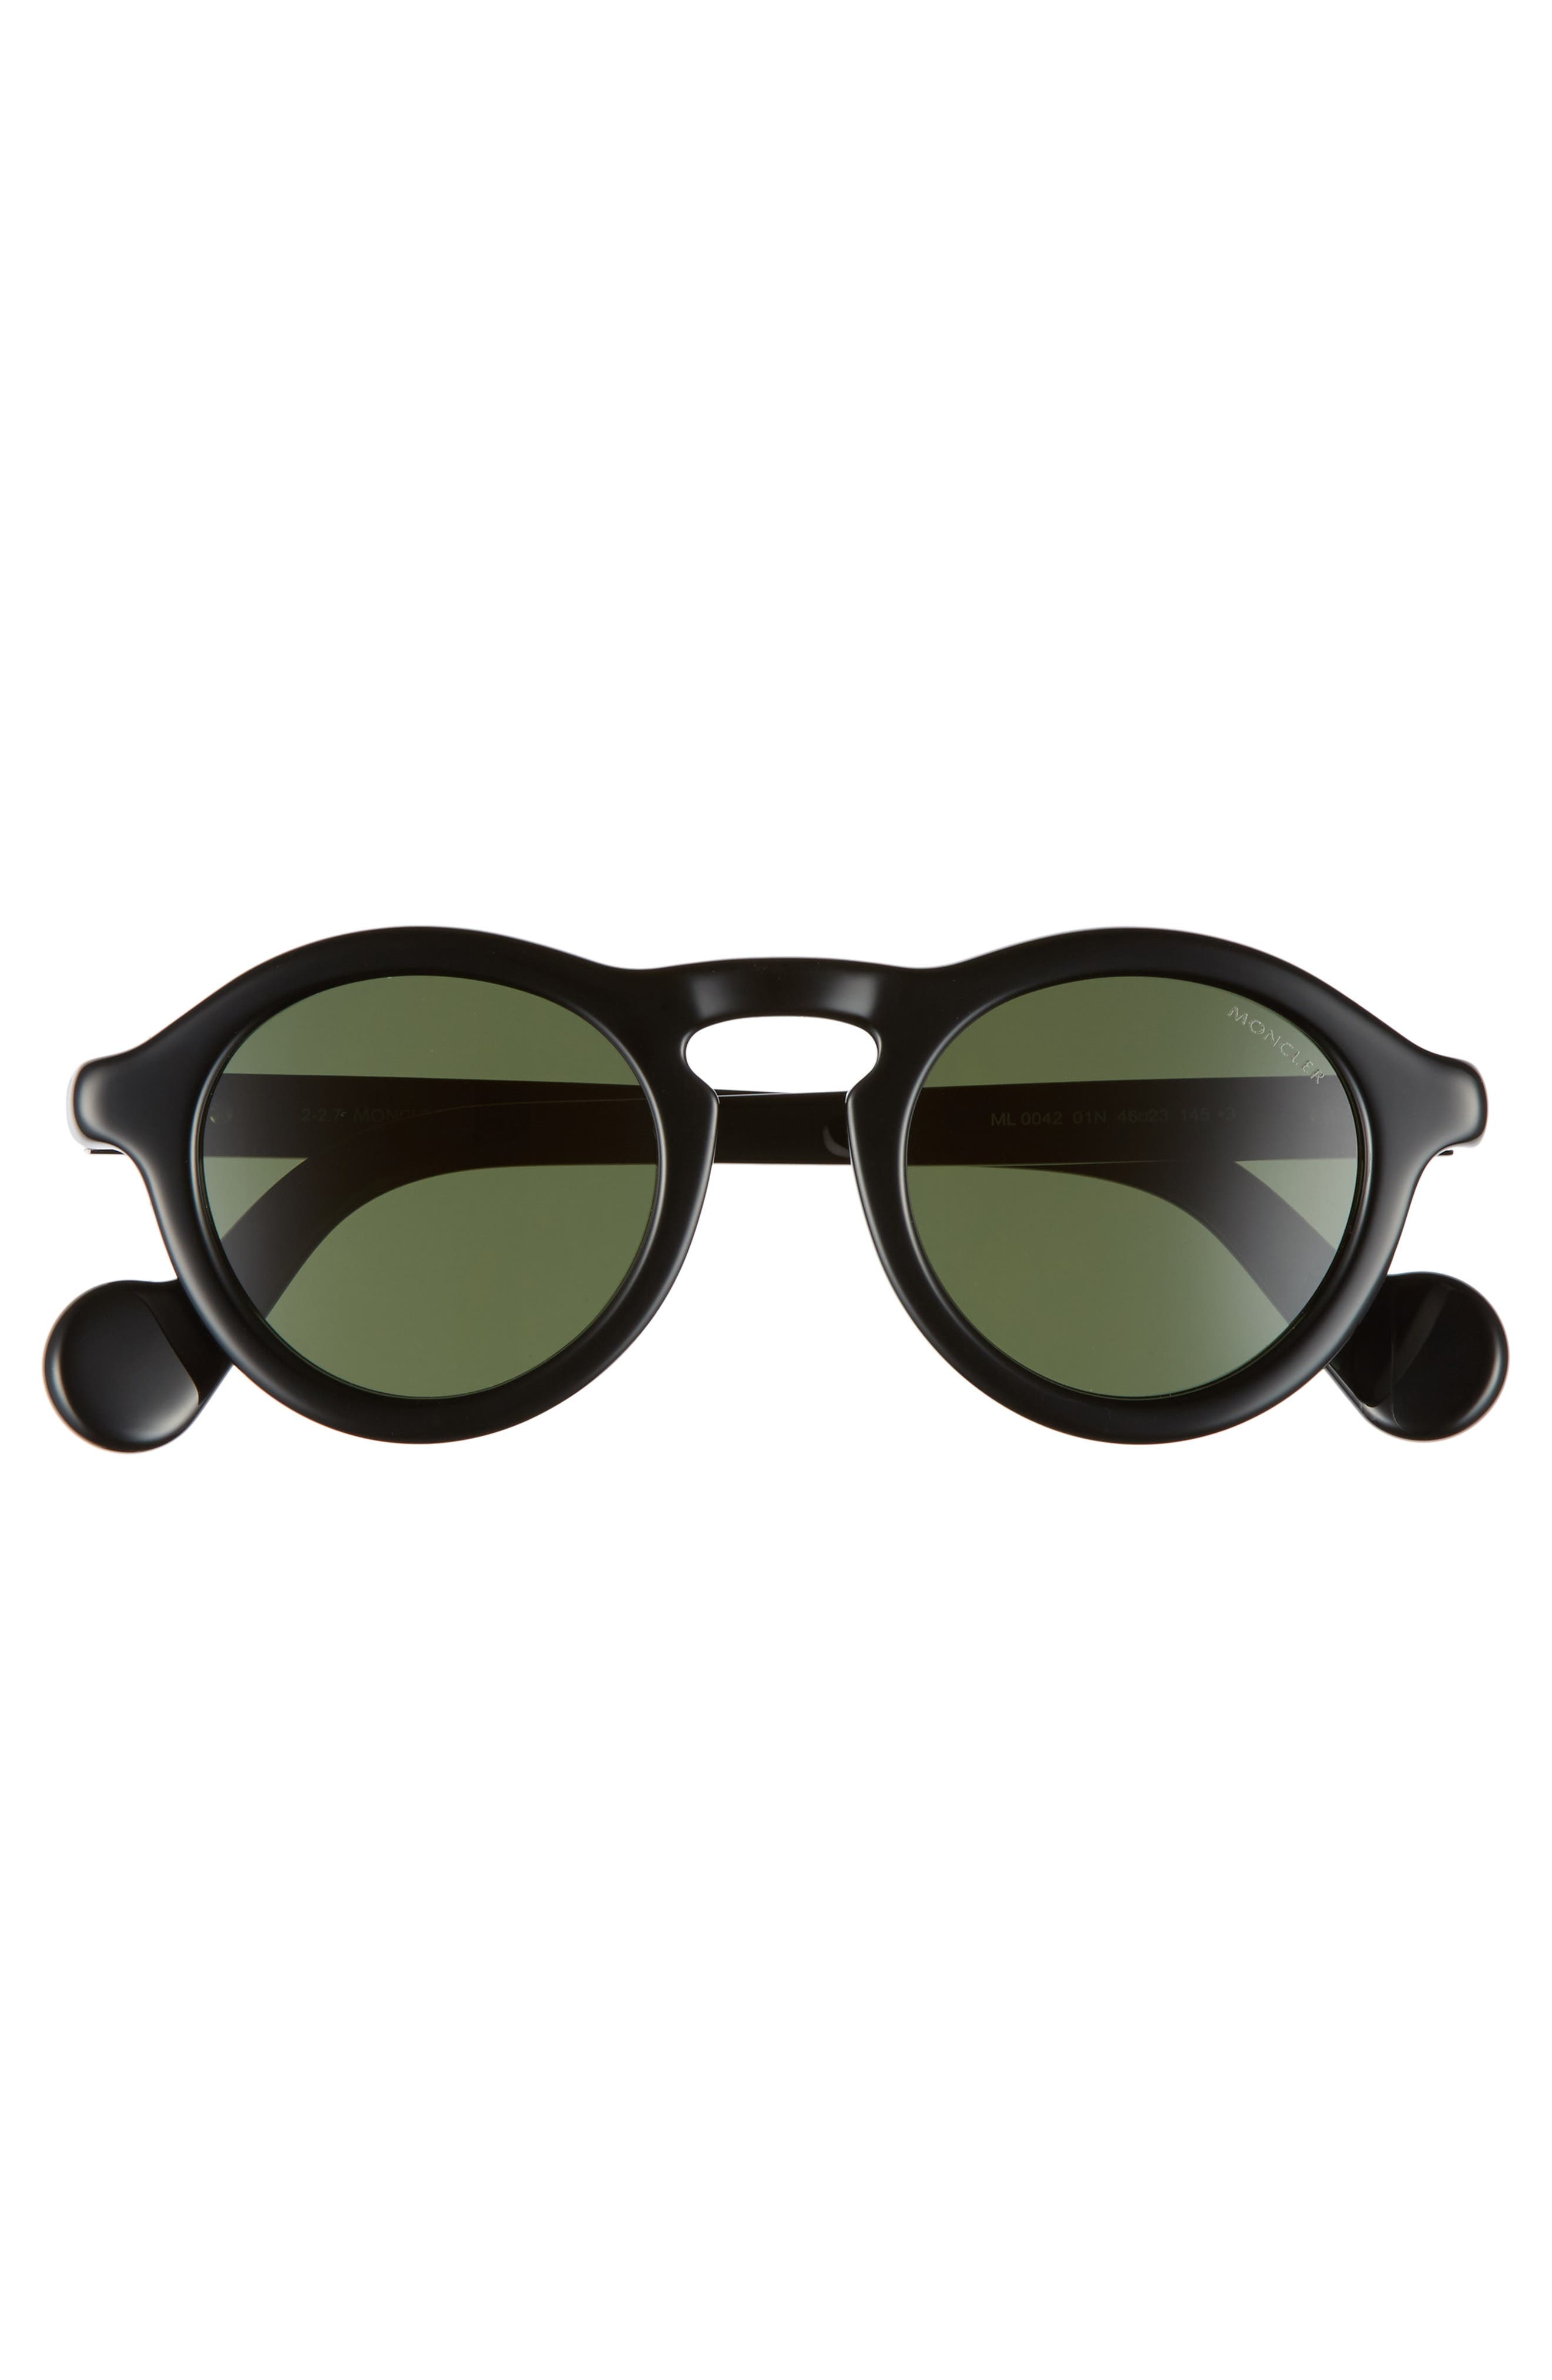 46mm Round Sunglasses,                             Alternate thumbnail 2, color,                             Shiny Black/ Green